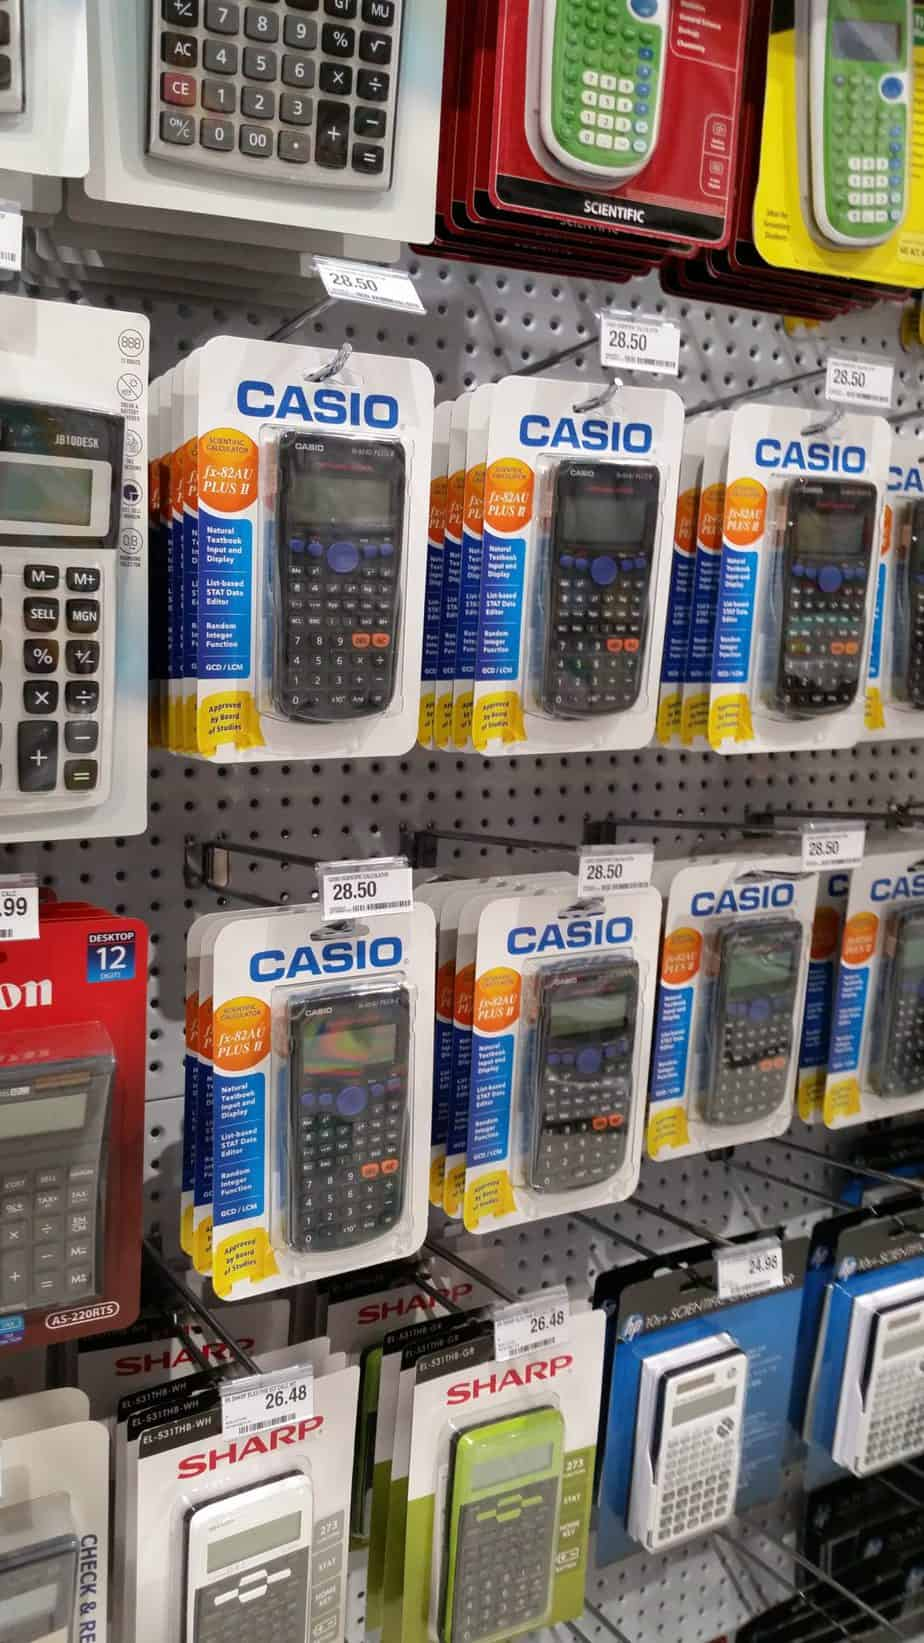 High school-aged homeschoolers will find a scientific calculator indispensable in their homeschool room.